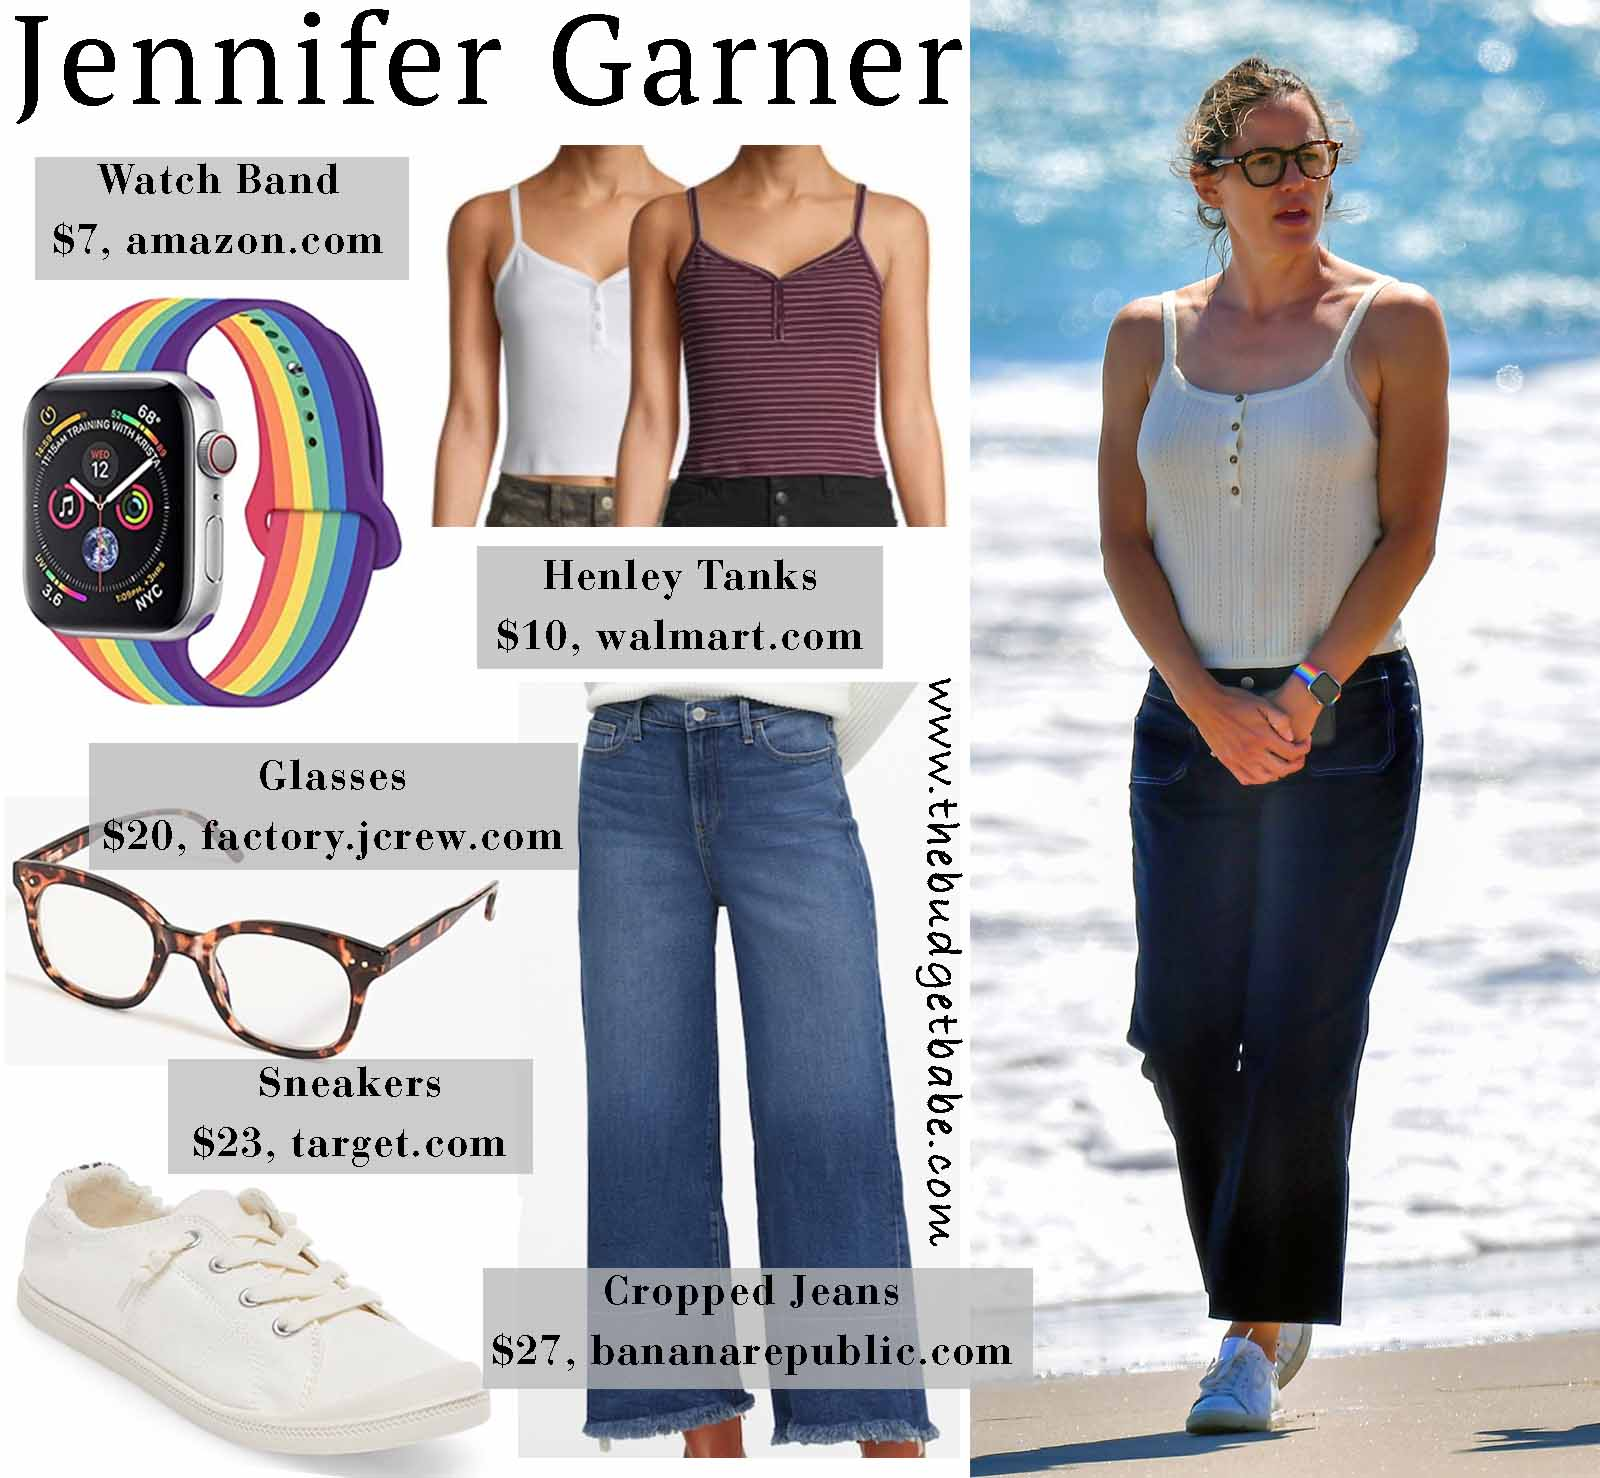 Jenner Garner hits the beach in summer staples!